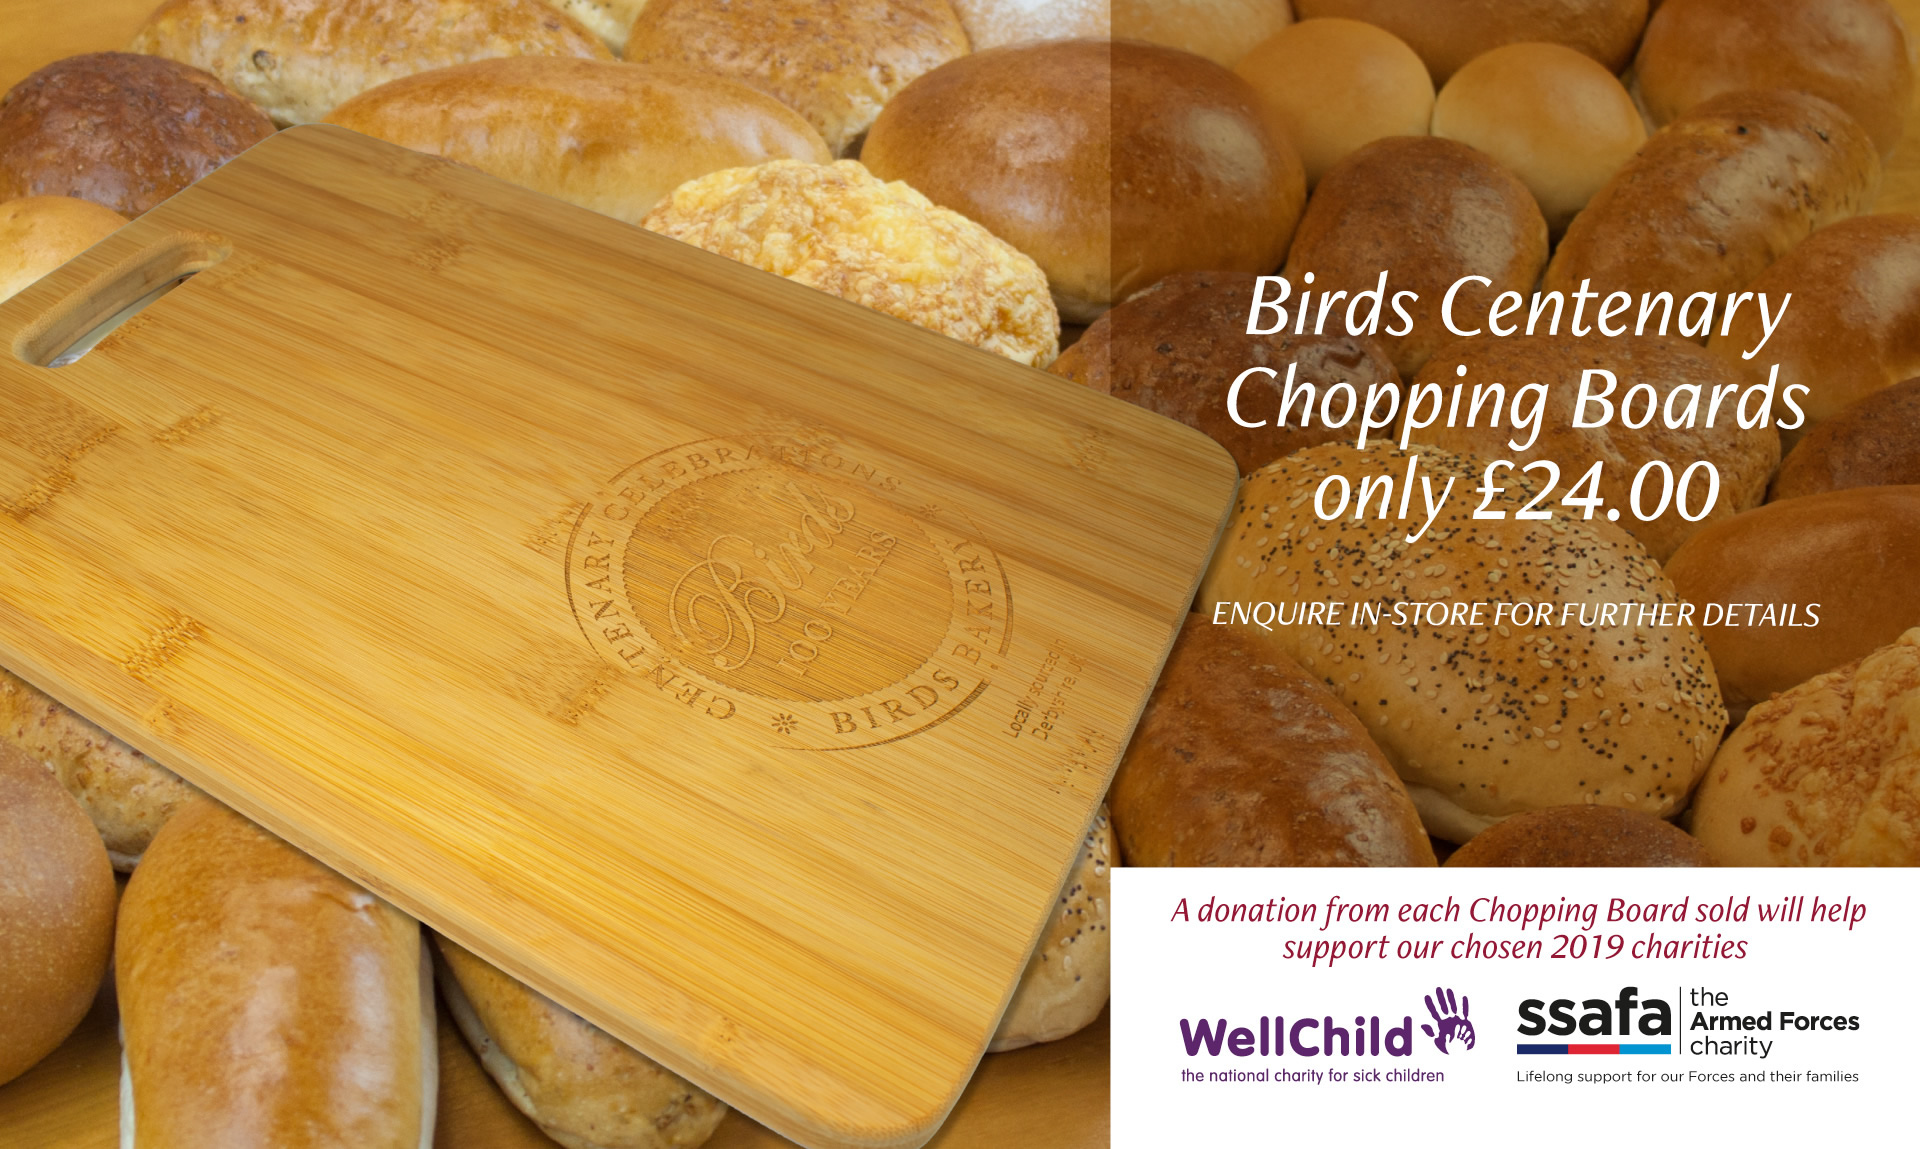 Birds centenary chopping boards, only £24.00